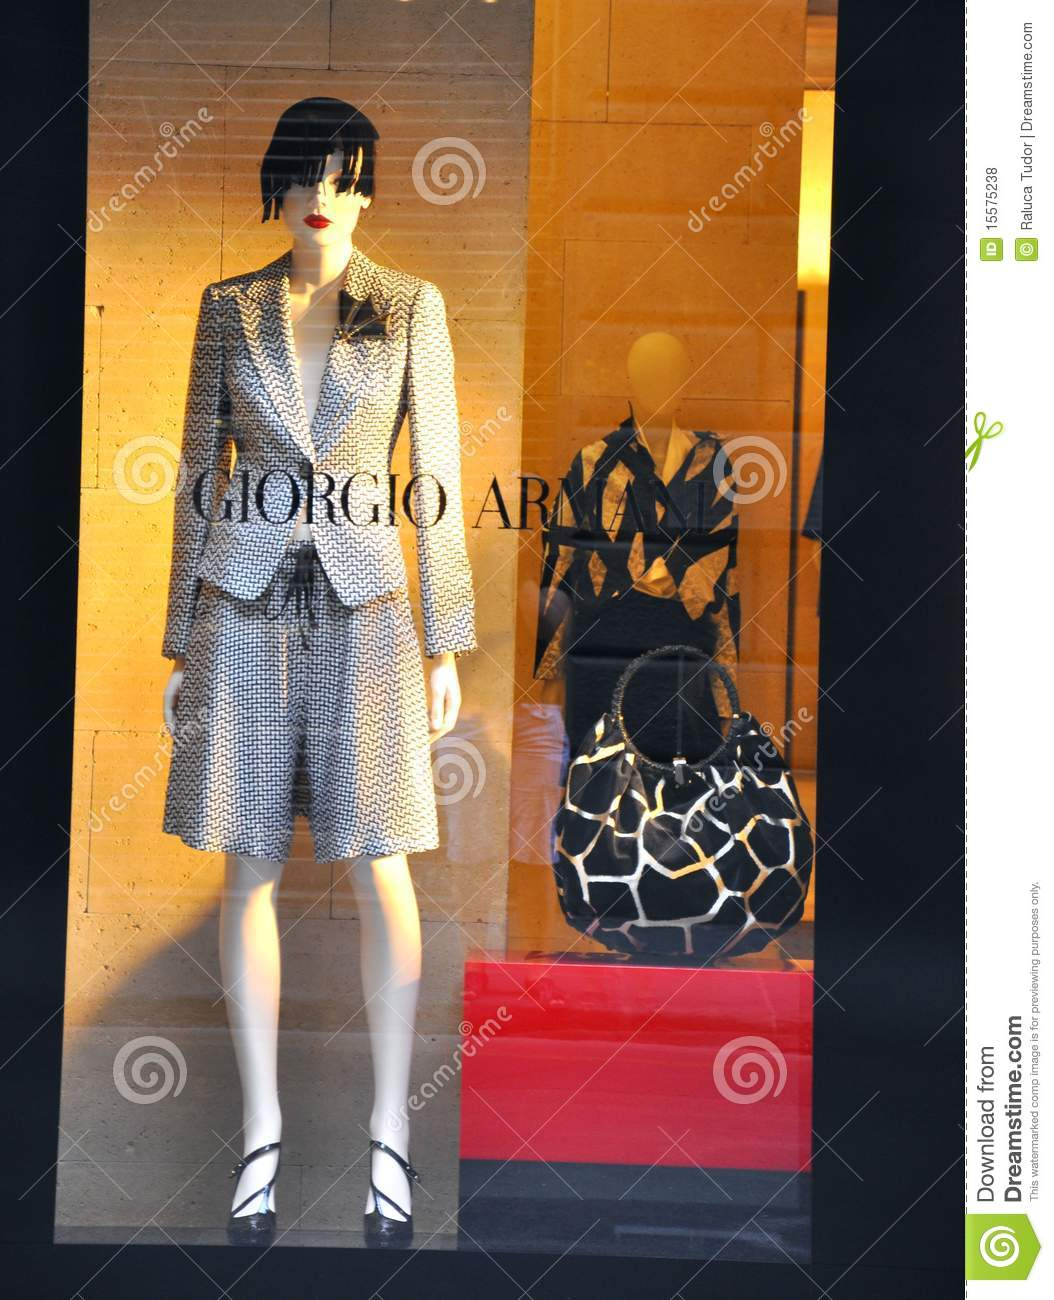 armani woman fashion shop in italy editorial stock photo. Black Bedroom Furniture Sets. Home Design Ideas